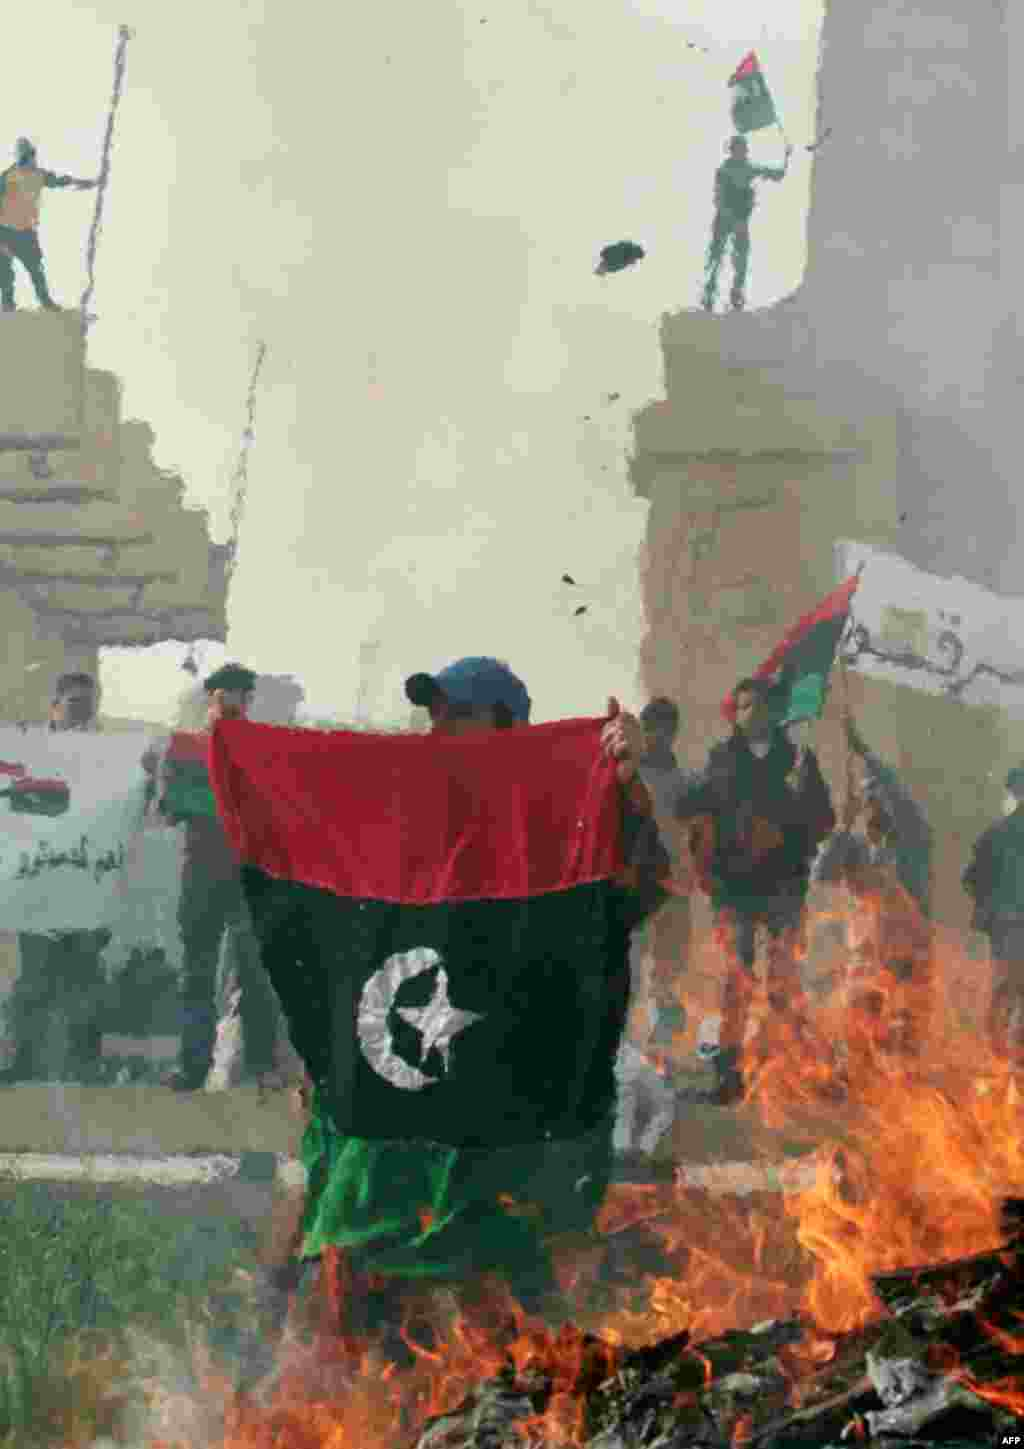 Protesters burn pictures of Gaddafi and copies of the Green Book. (Reuters/Suhaib Salem)